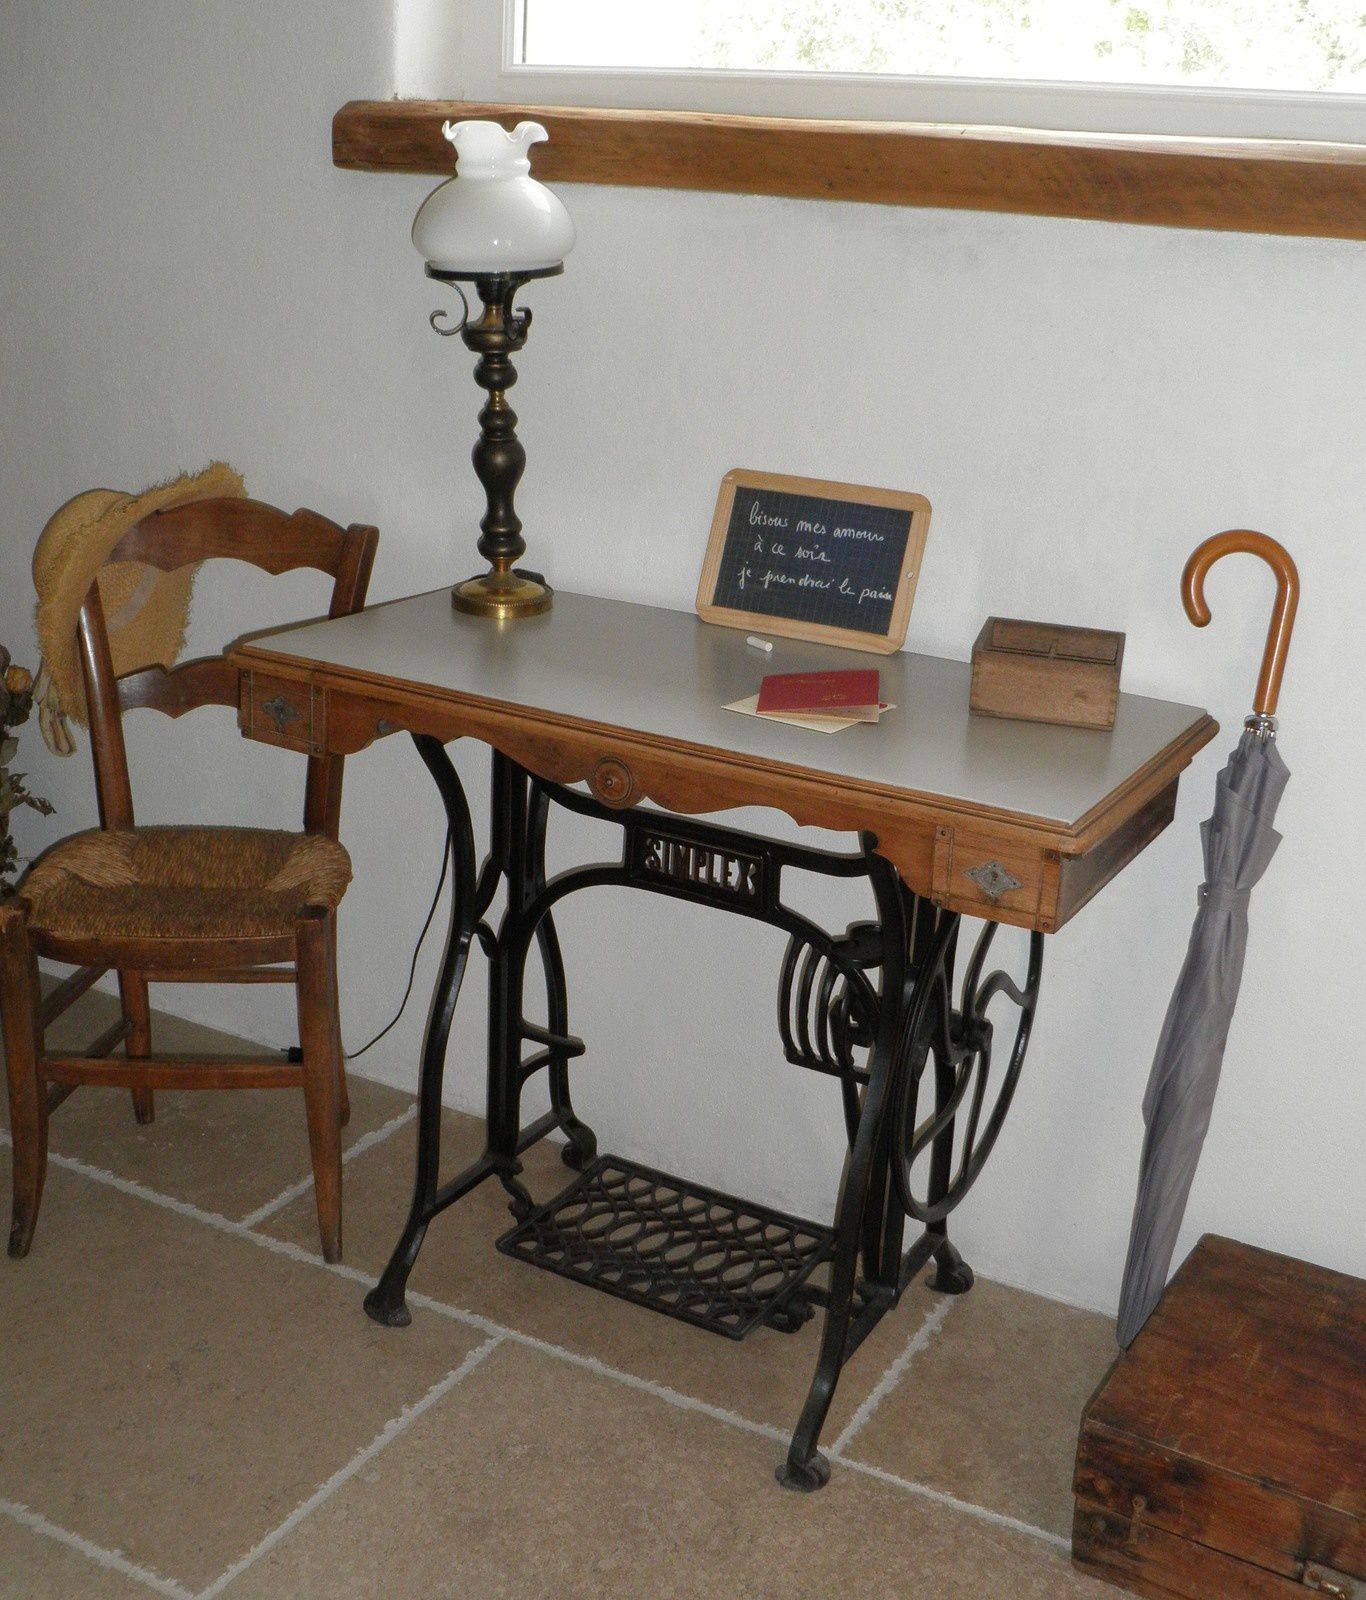 Ancienne machine coudre relook e en console valeyrie cr ation for Table console pour cuisine